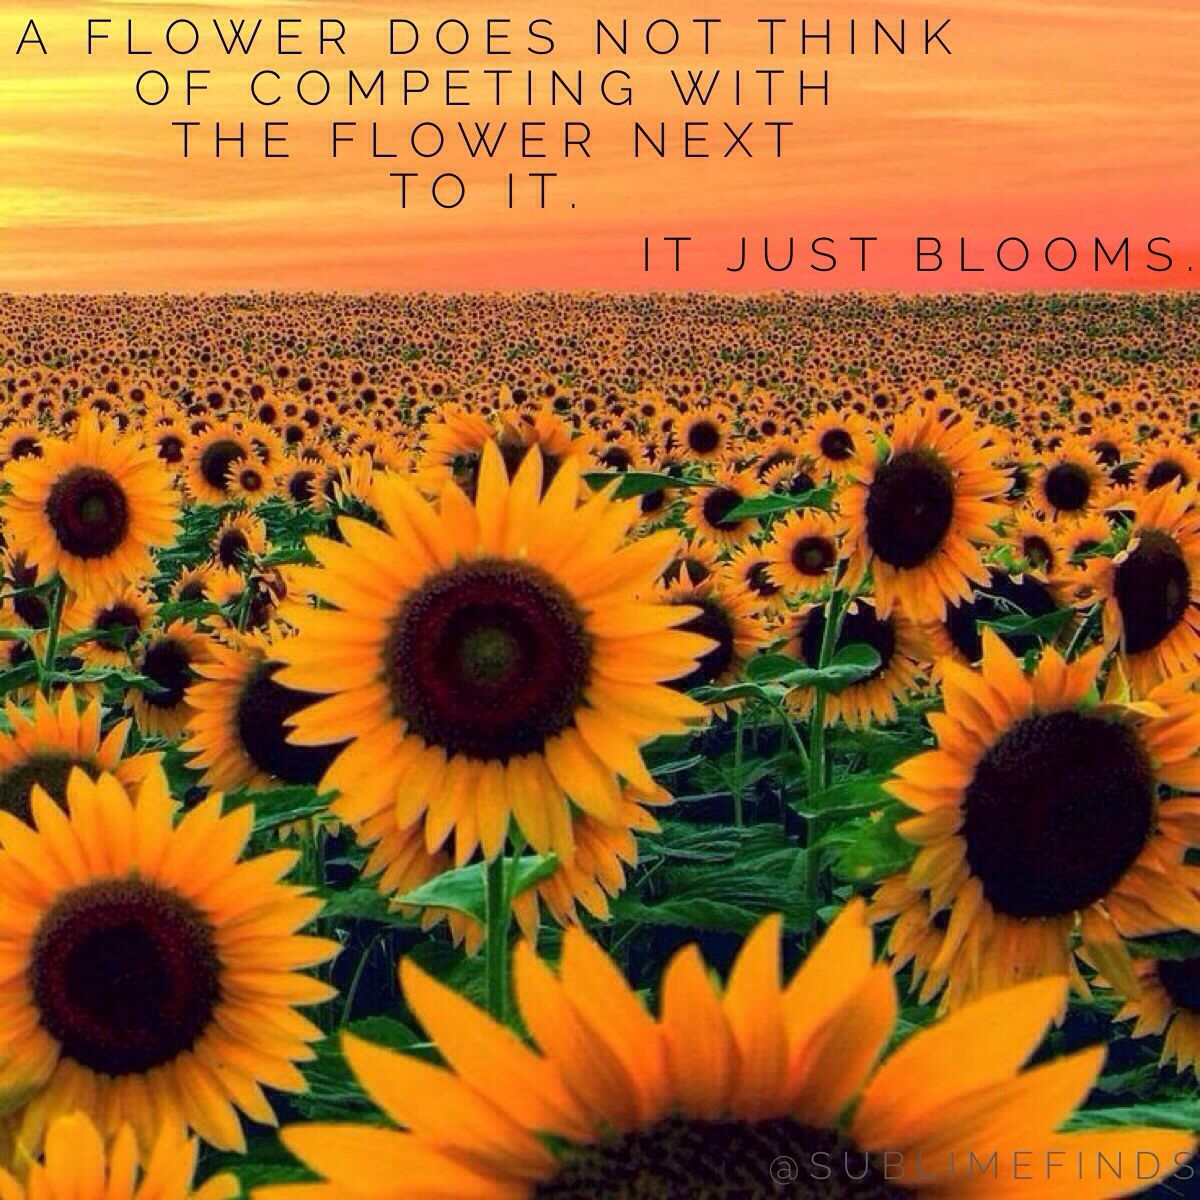 A flower does not think of competing with the flower next to it. It just blooms. IT JUST BLOOMS.